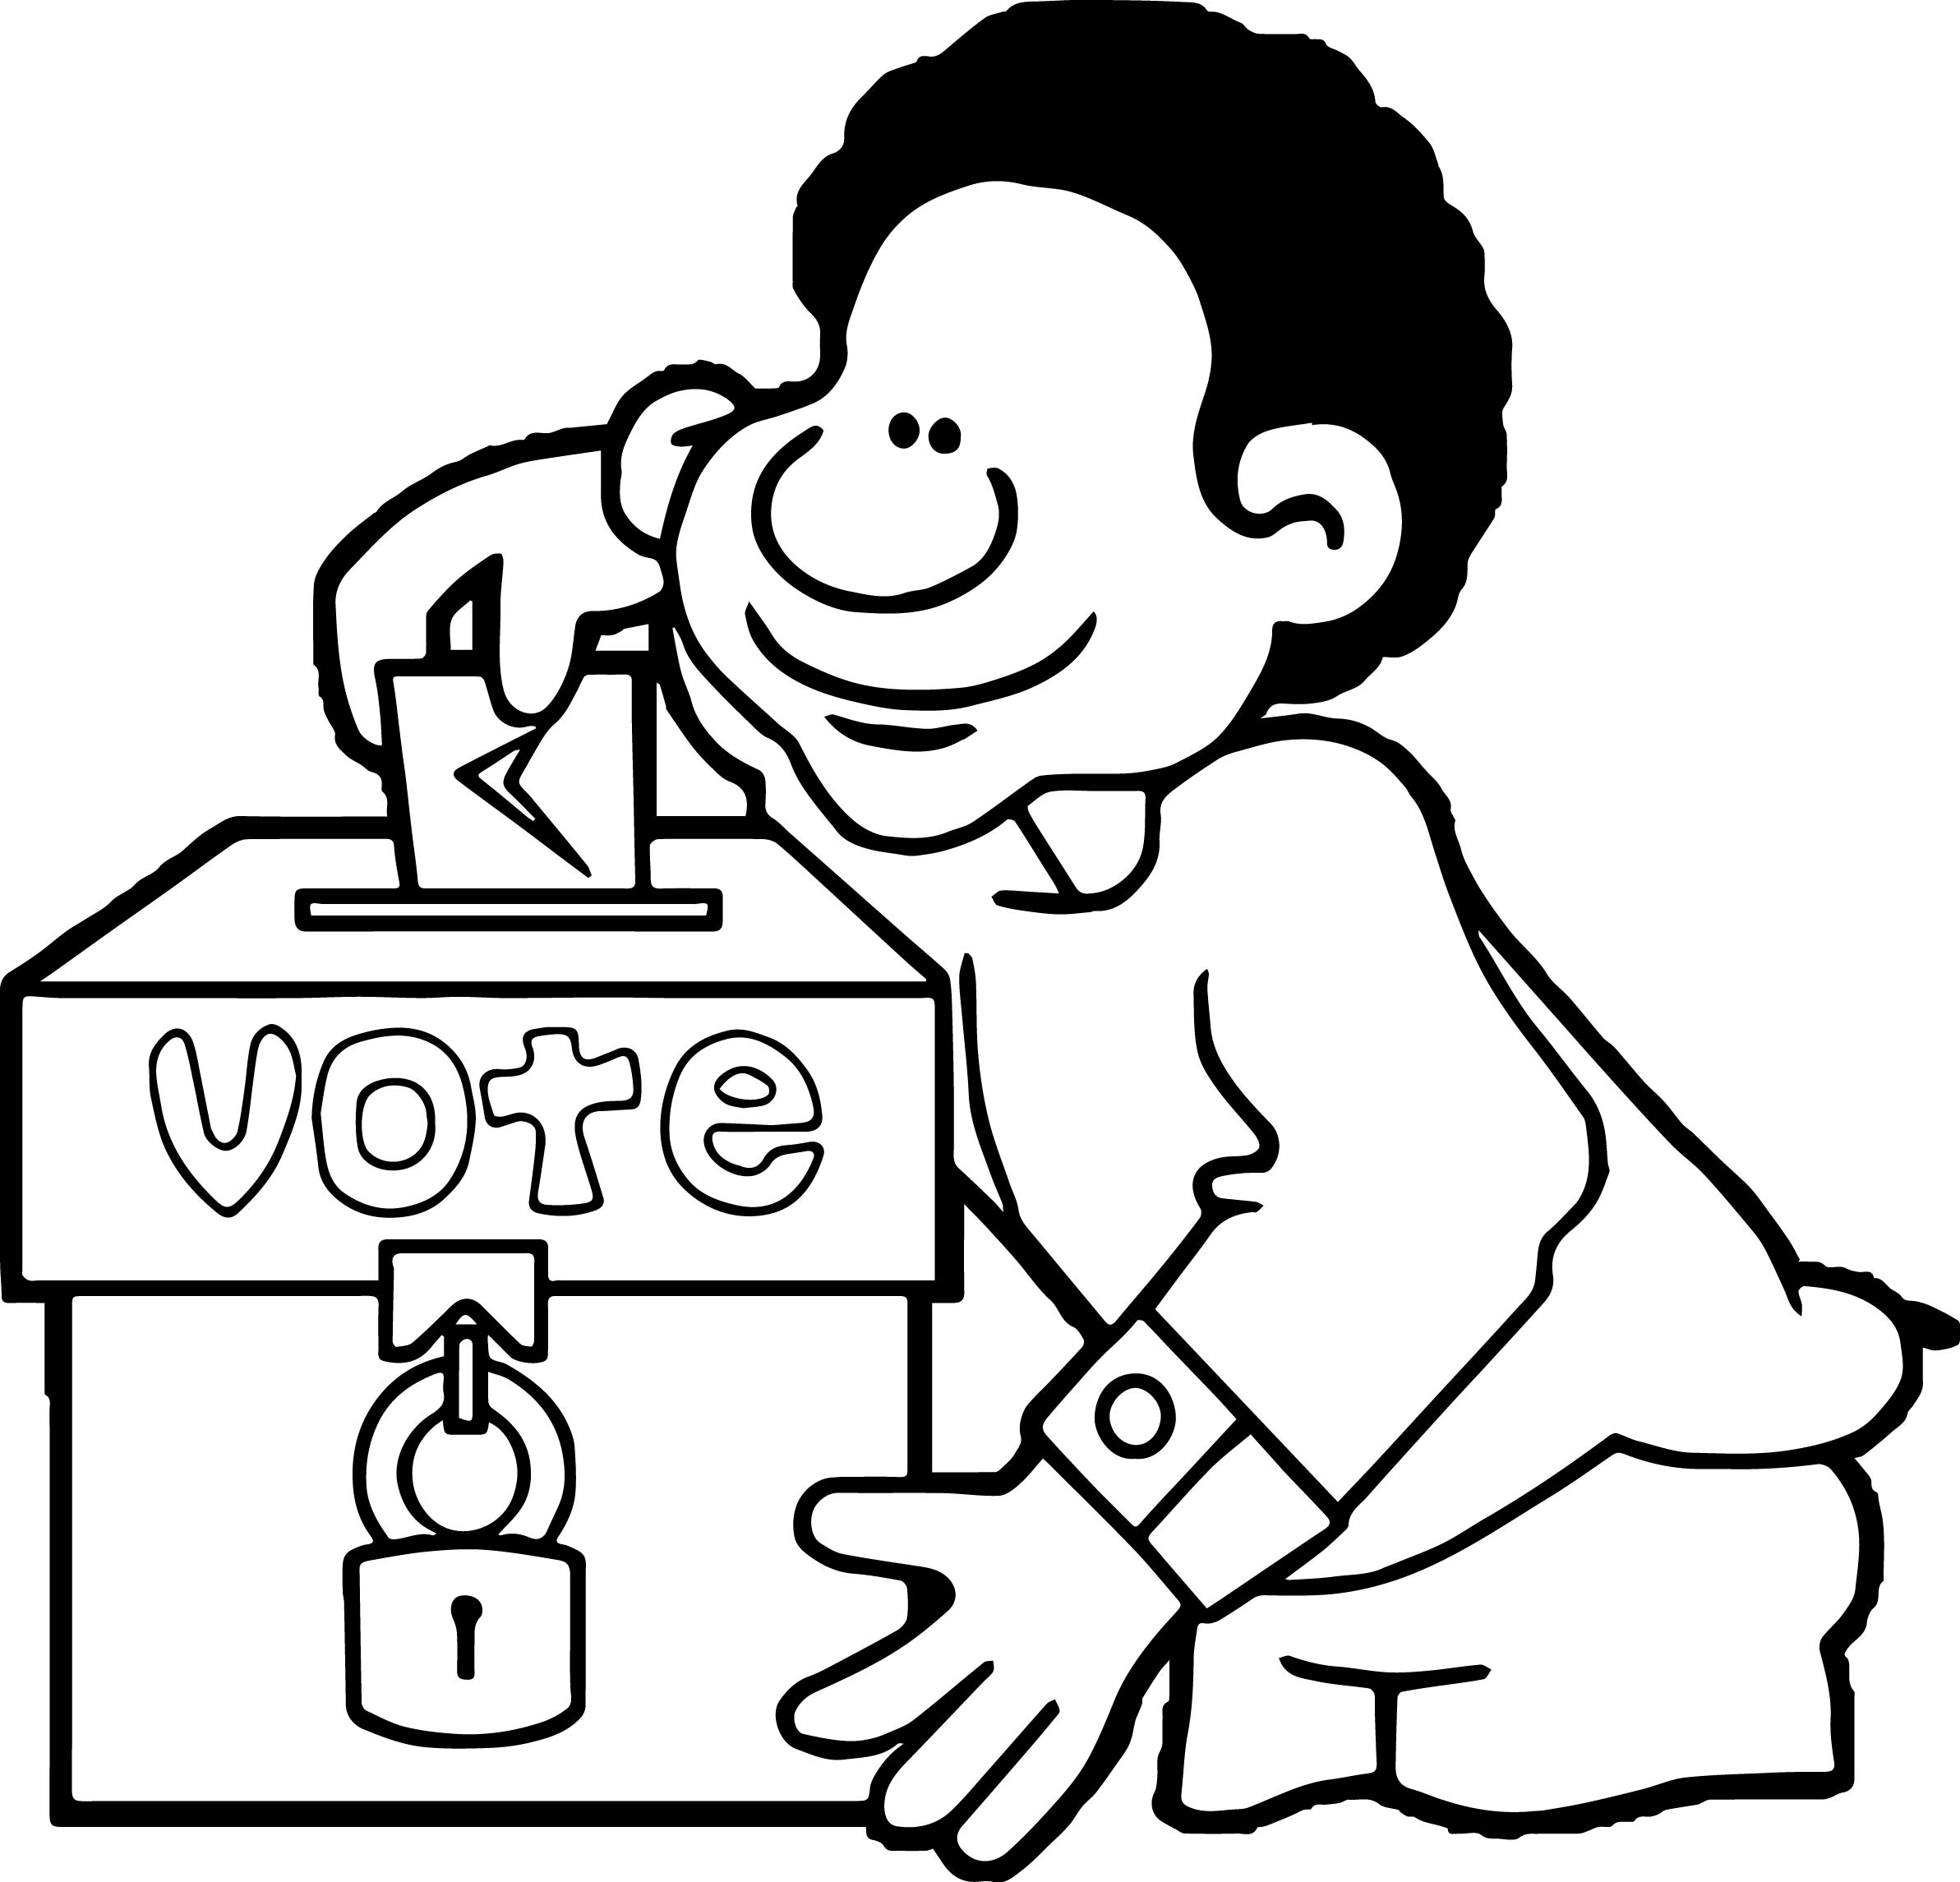 Election Day Coloring Pages Sketch Coloring Page